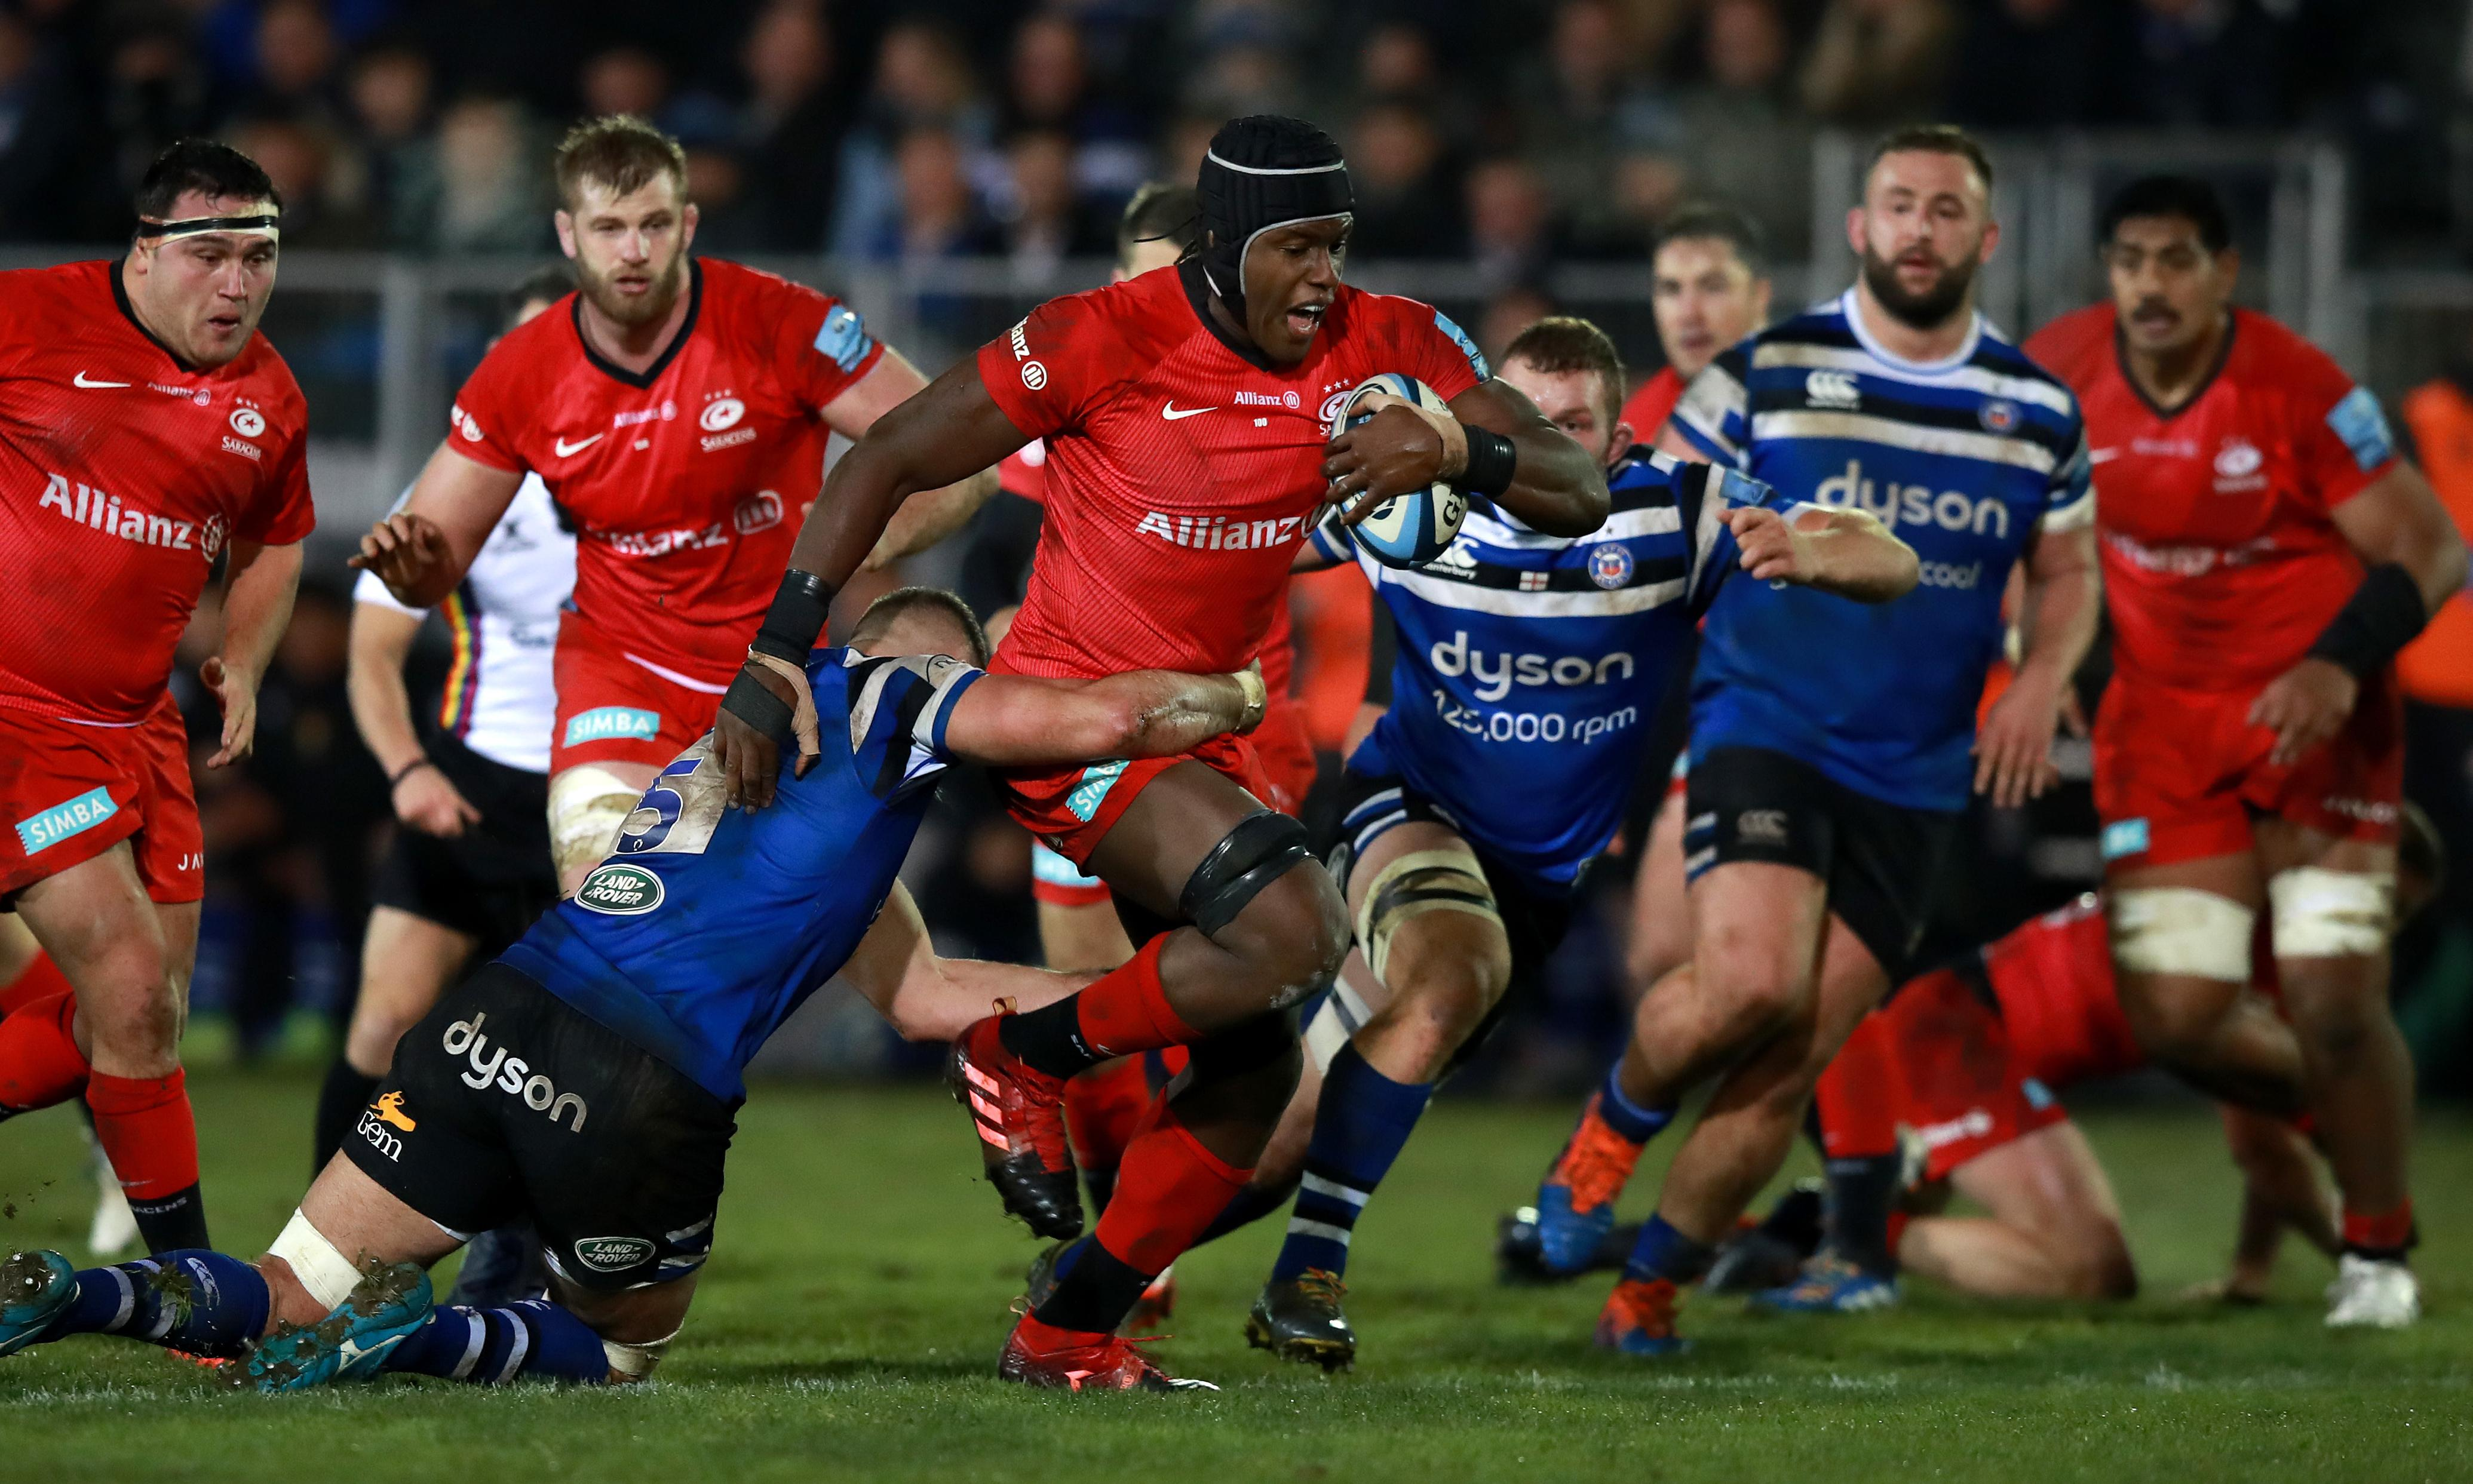 Champions Cup preview: Munster expect monster crowd for Saracens visit